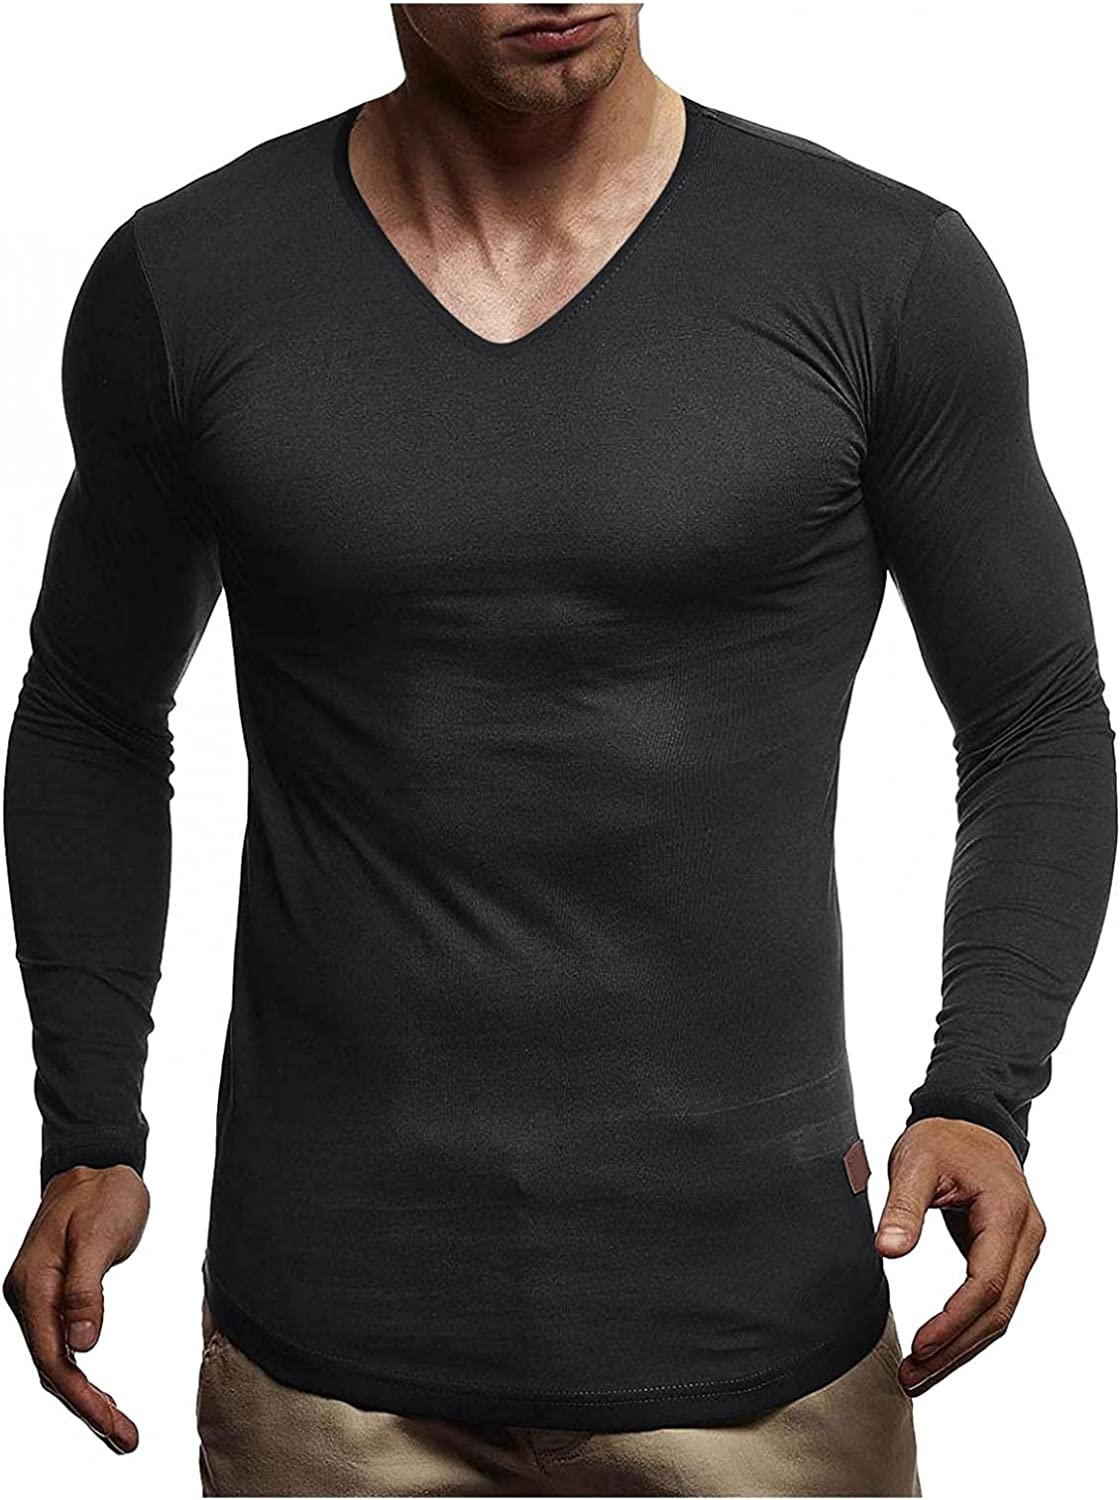 Aayomet Men's T Shirts Vintage Solid Long Sleeve V Neck T-Shirt Casual Sport Workout Athletic Tee Tops Shirts